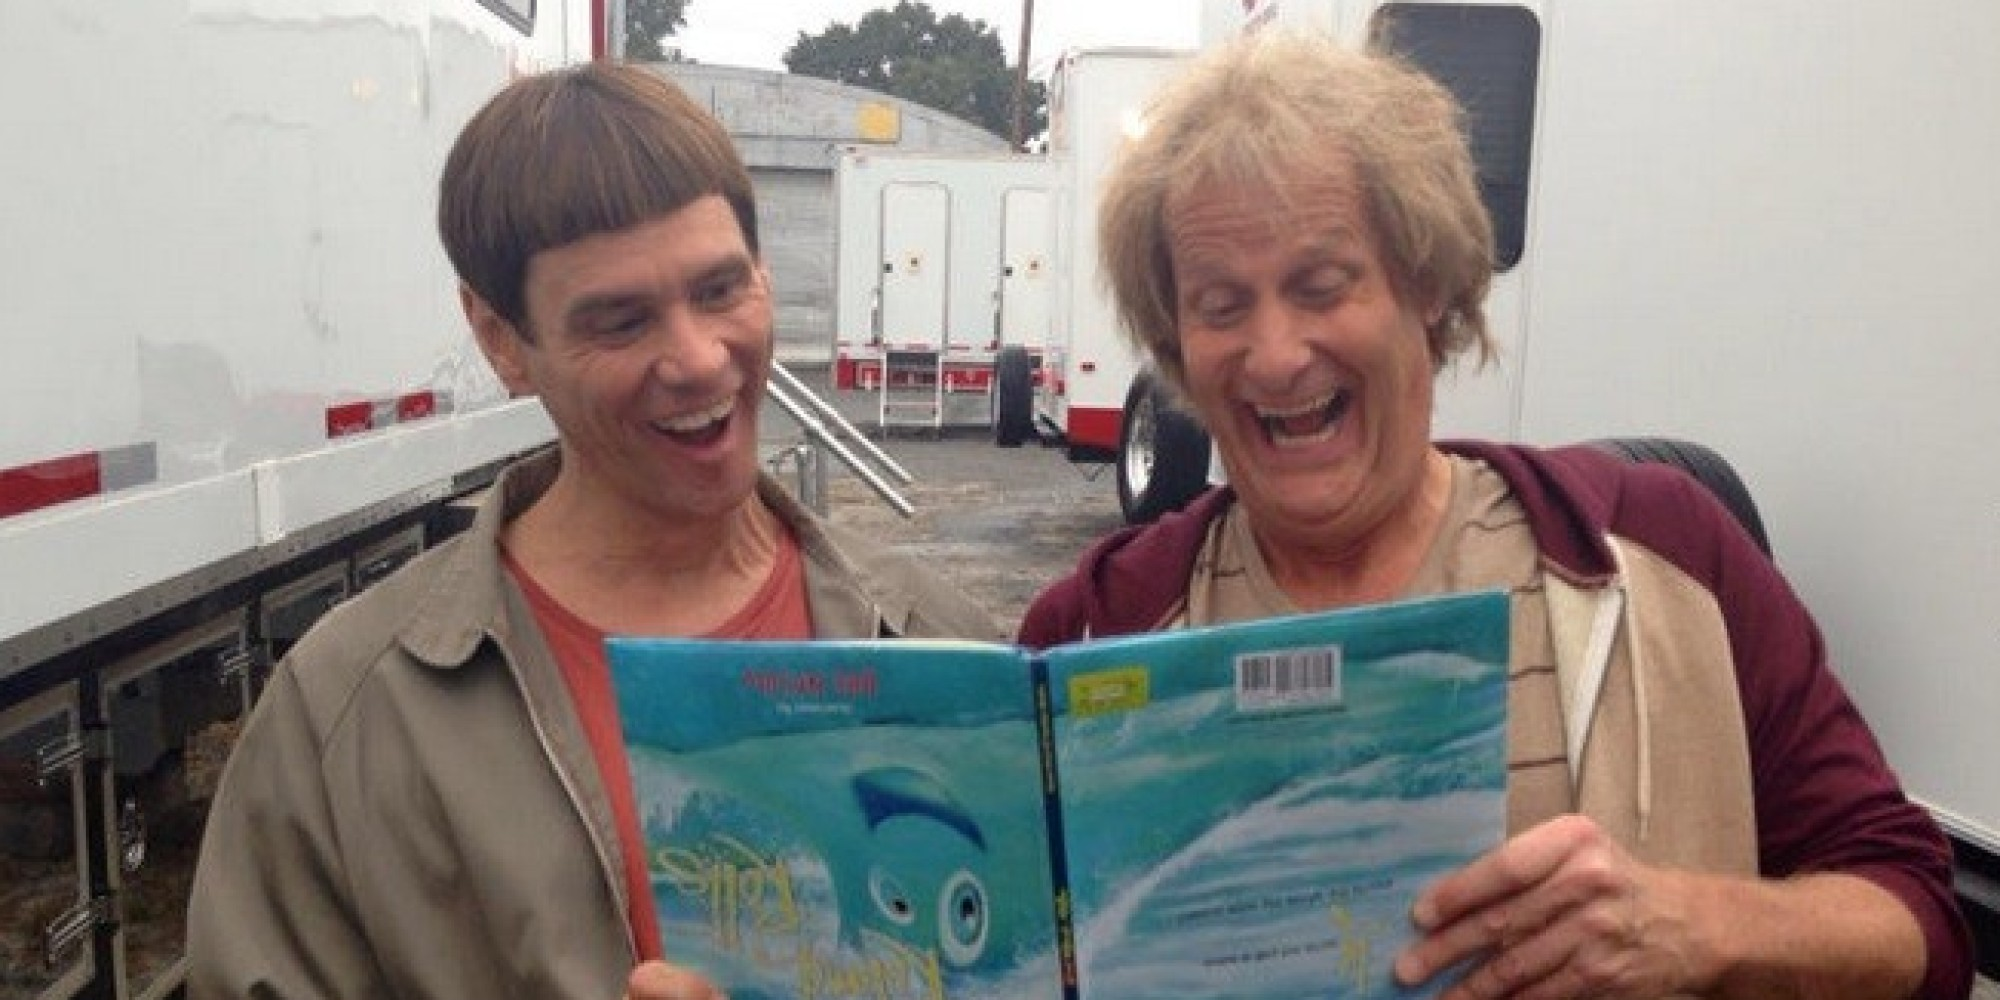 Jim Carrey & Jeff Daniels To Premiere 'Dumb and Dumber To